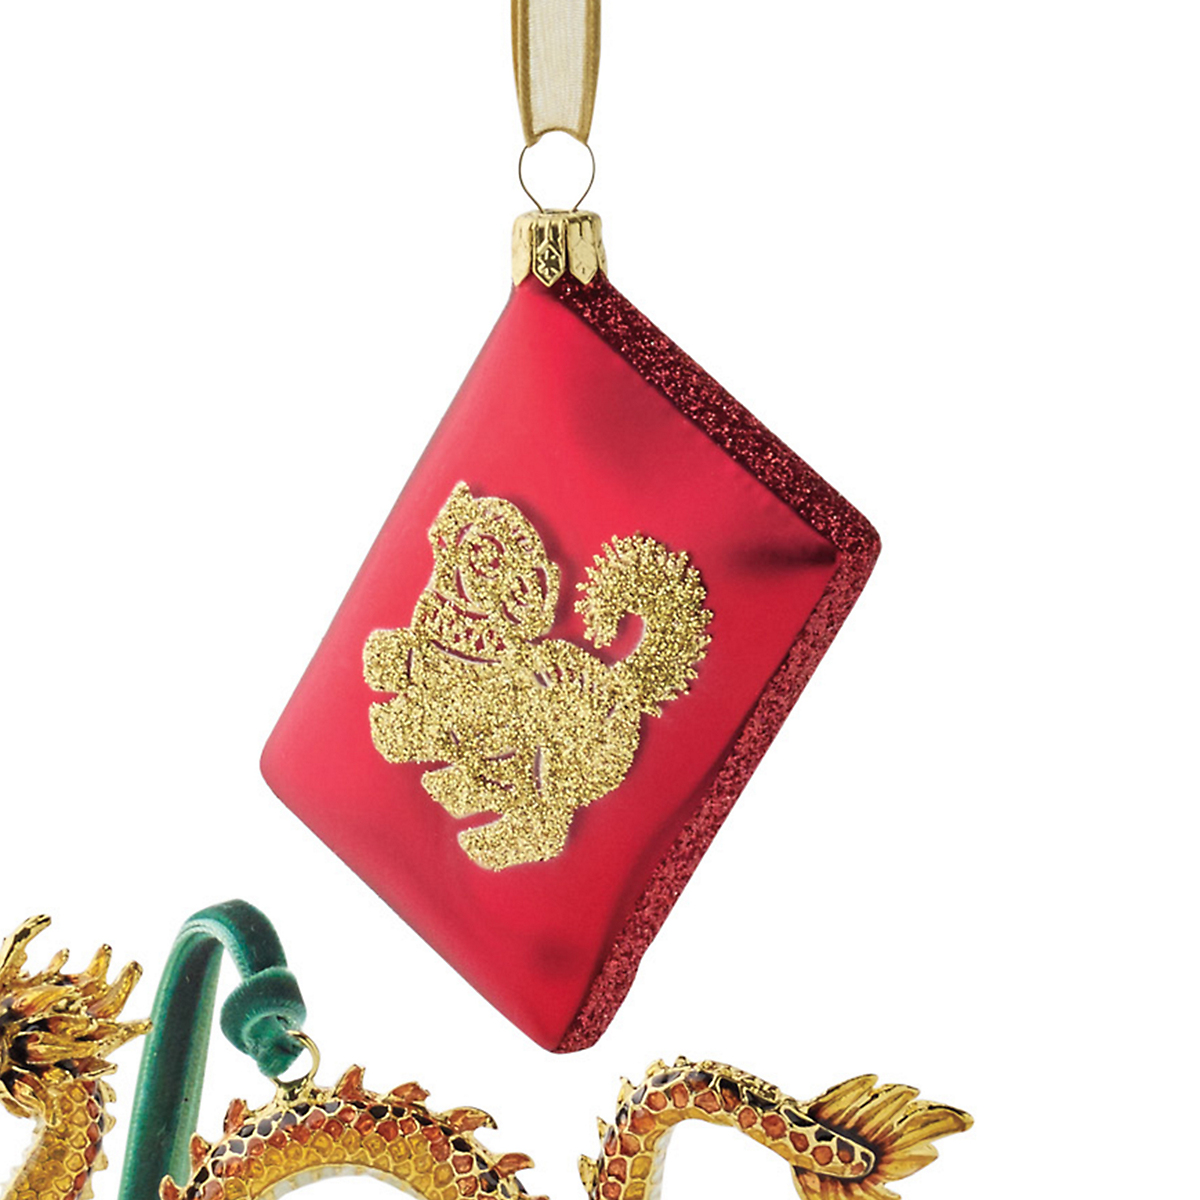 2018 Year Of The Dog Red Envelope Christmas Ornament